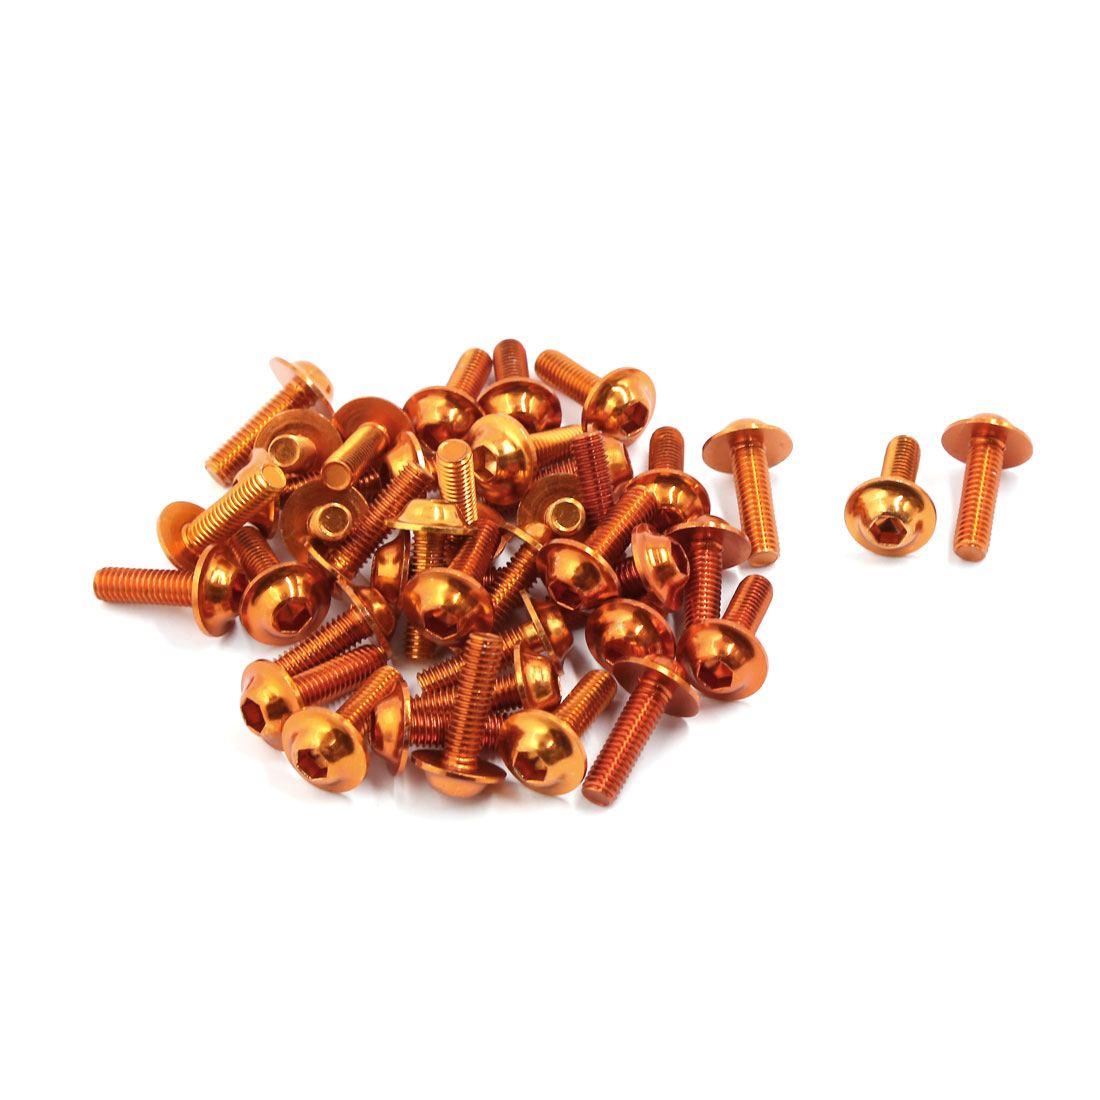 40pcs Orange 6mm Thread Dia Motorbike Sportbike Fairing Bodywork Bolts Screws